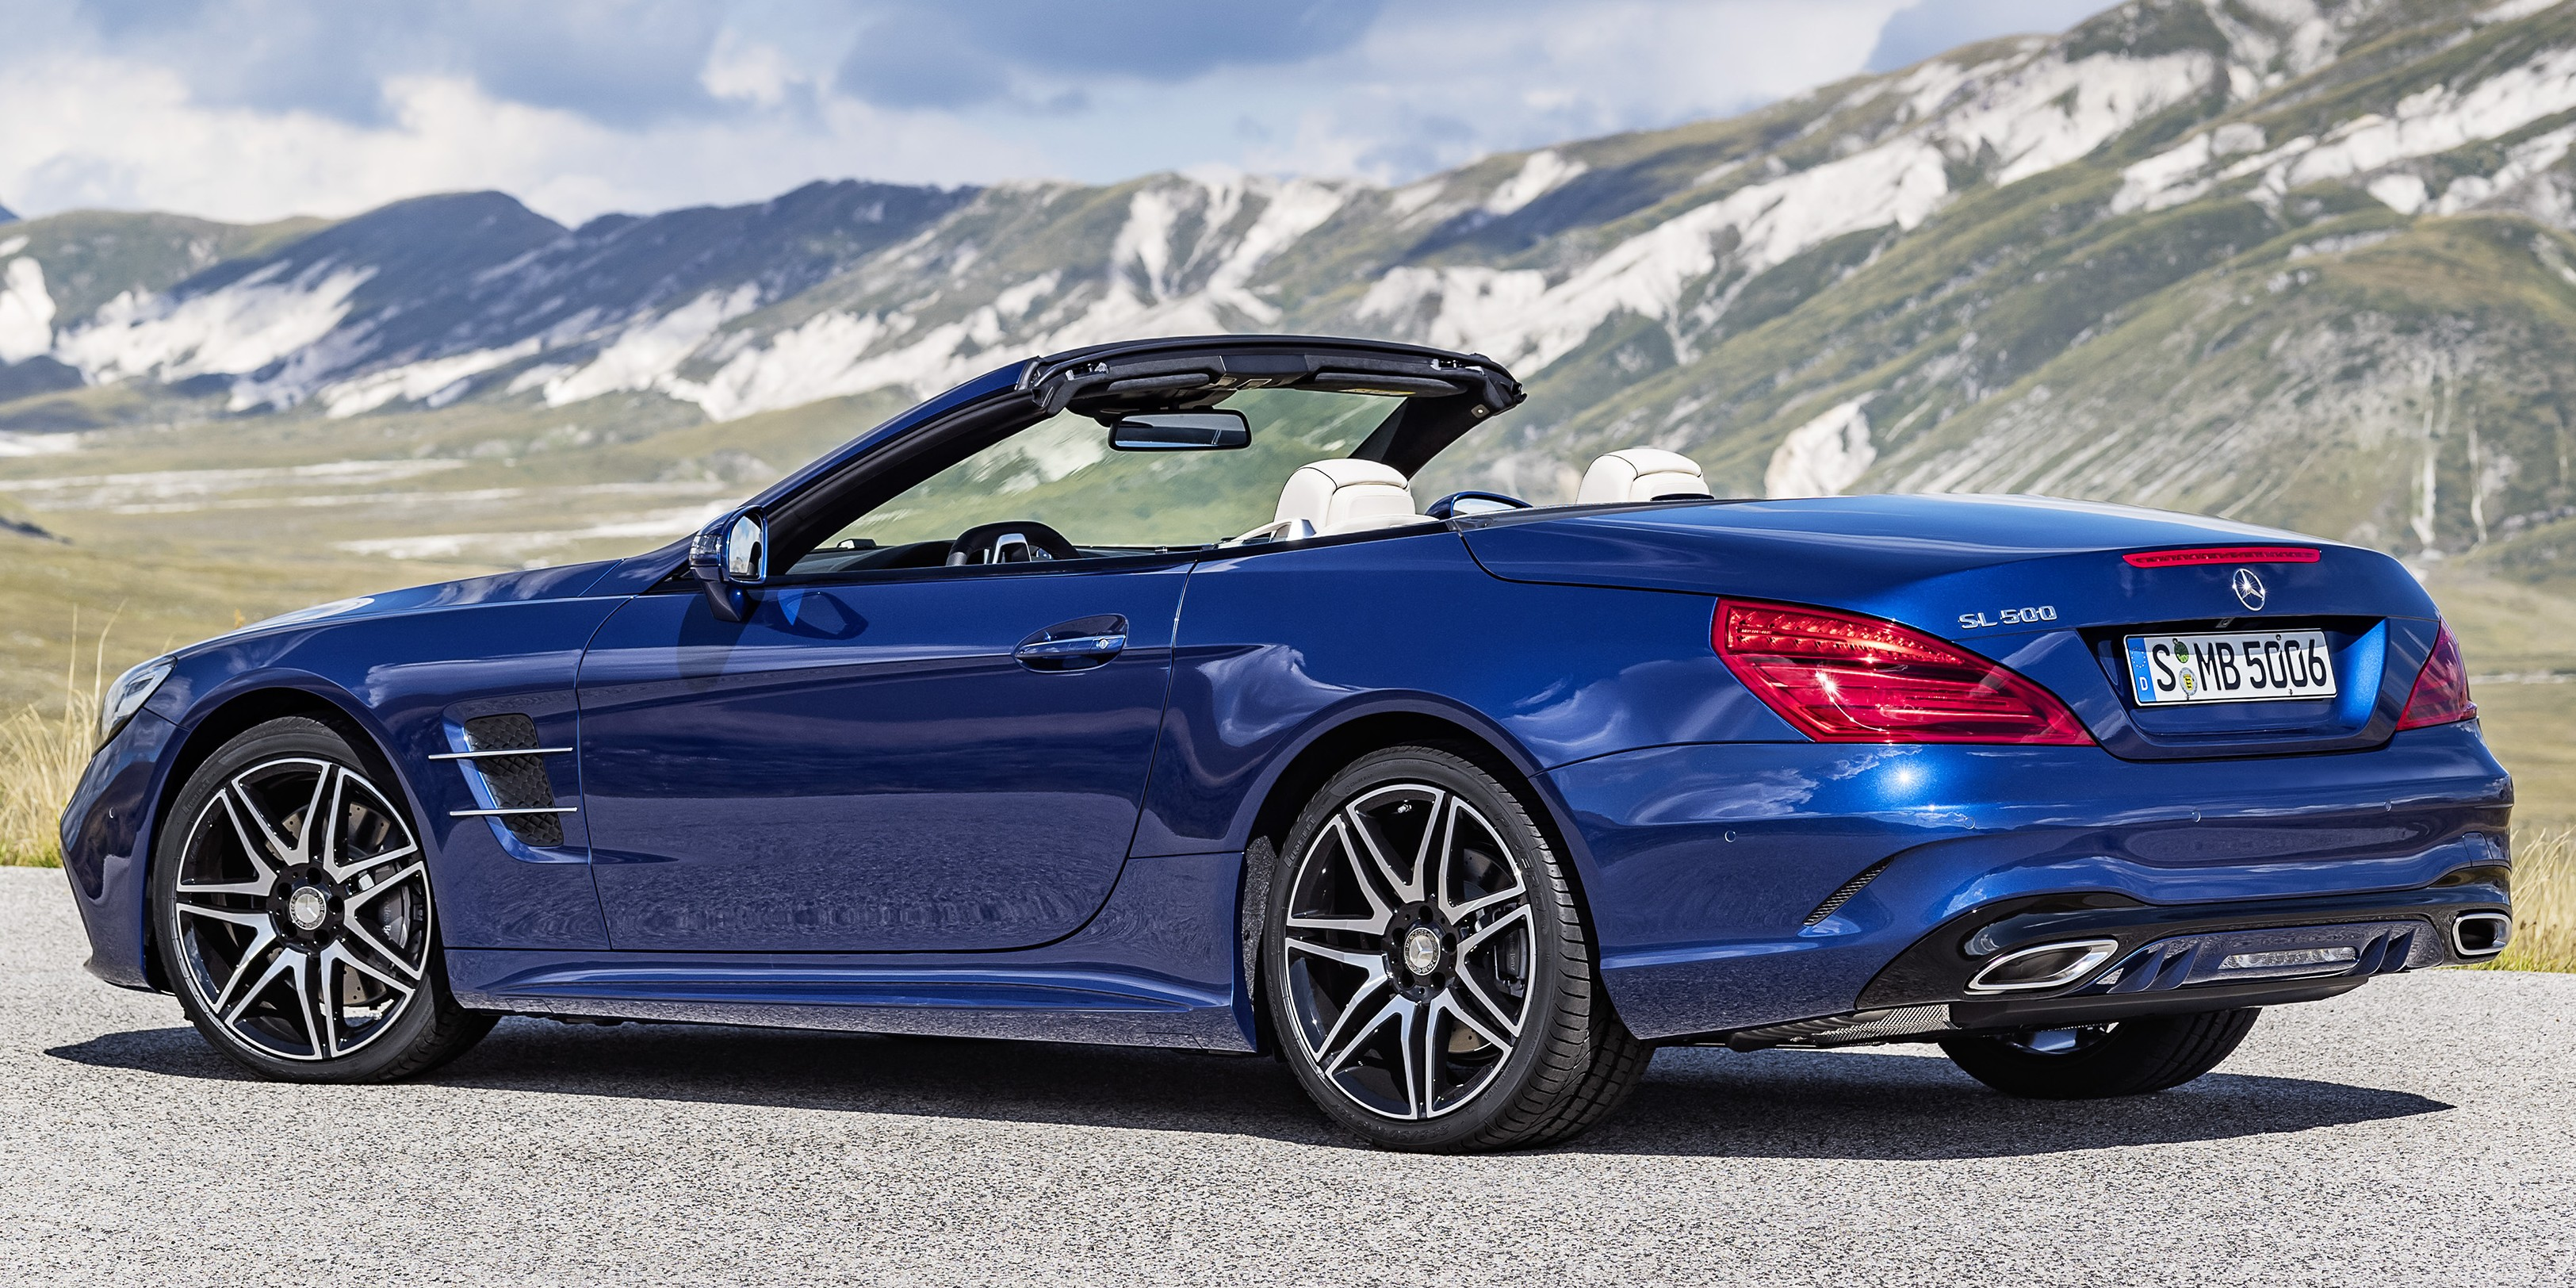 R231 mercedes benz sl facelift unveiled sl 400 sl 500 for Mercedes benz sl500 amg